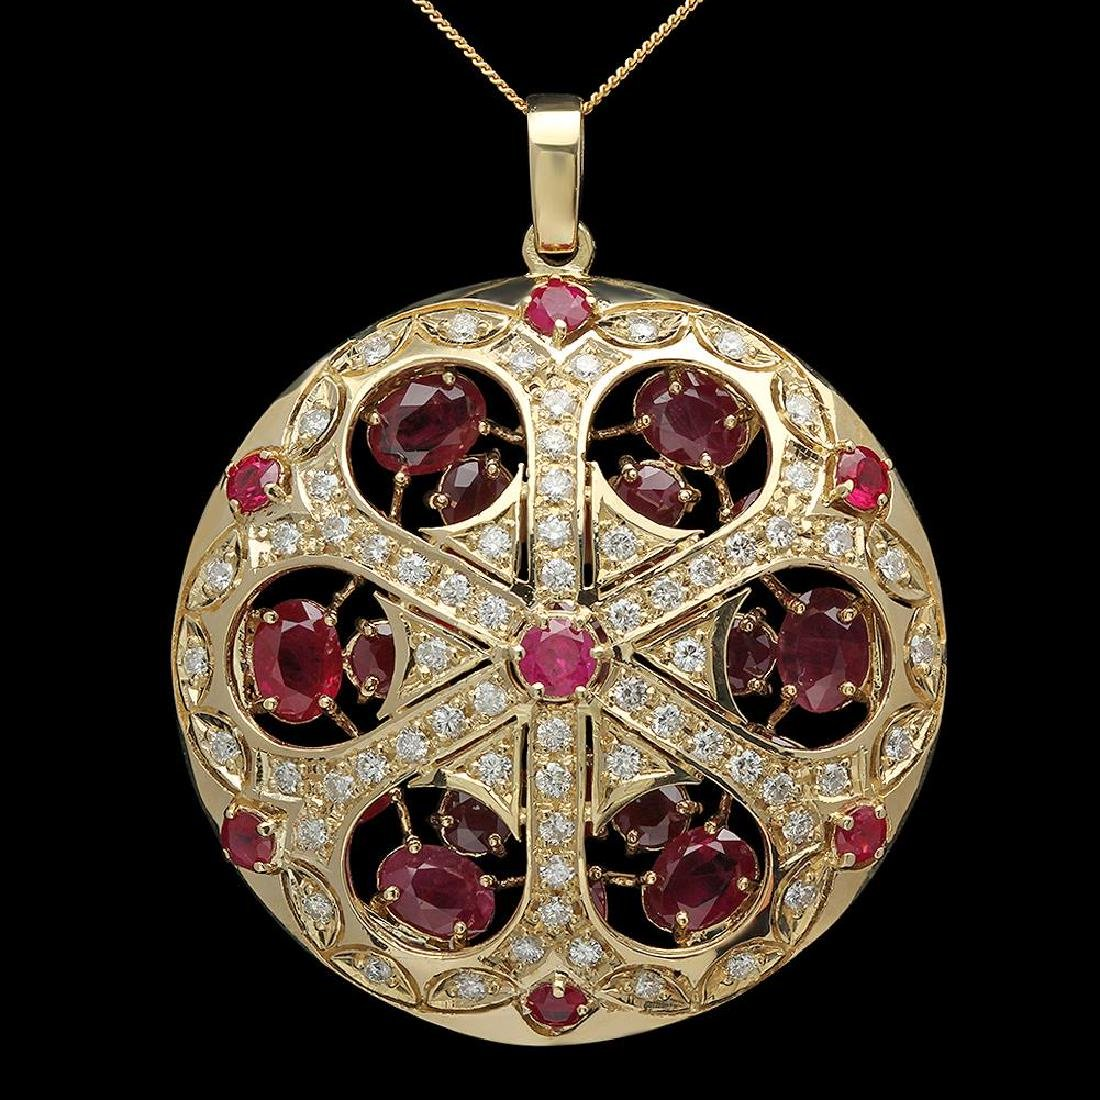 14K Gold 16.40ct Ruby 1.94ct Diamond Pendant